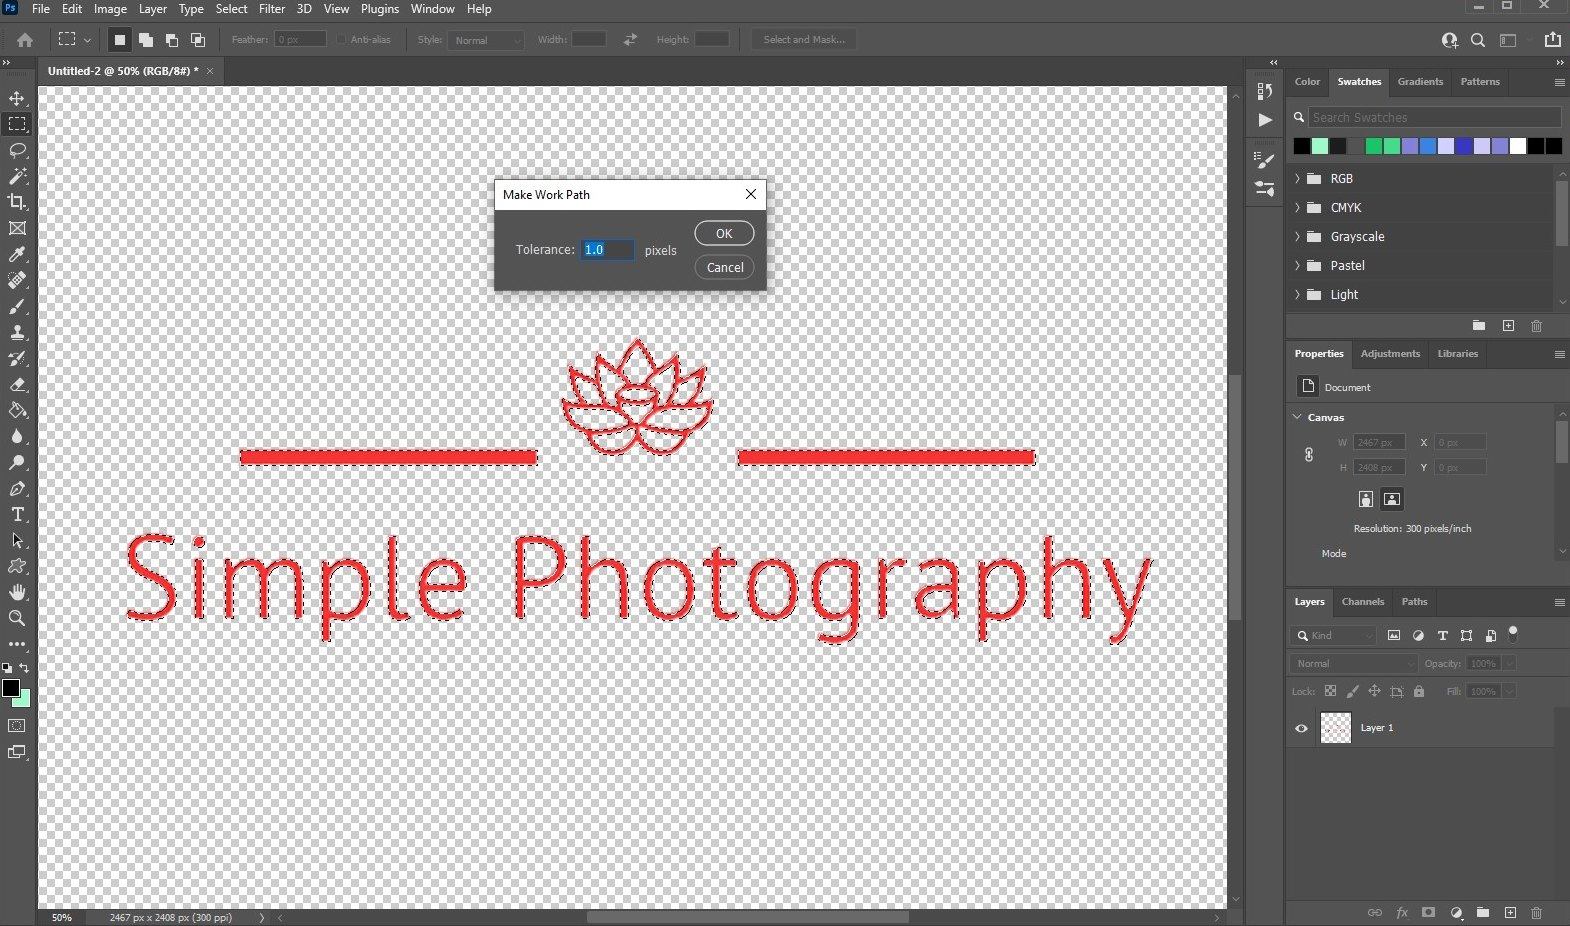 vectorize image in photoshop - 3